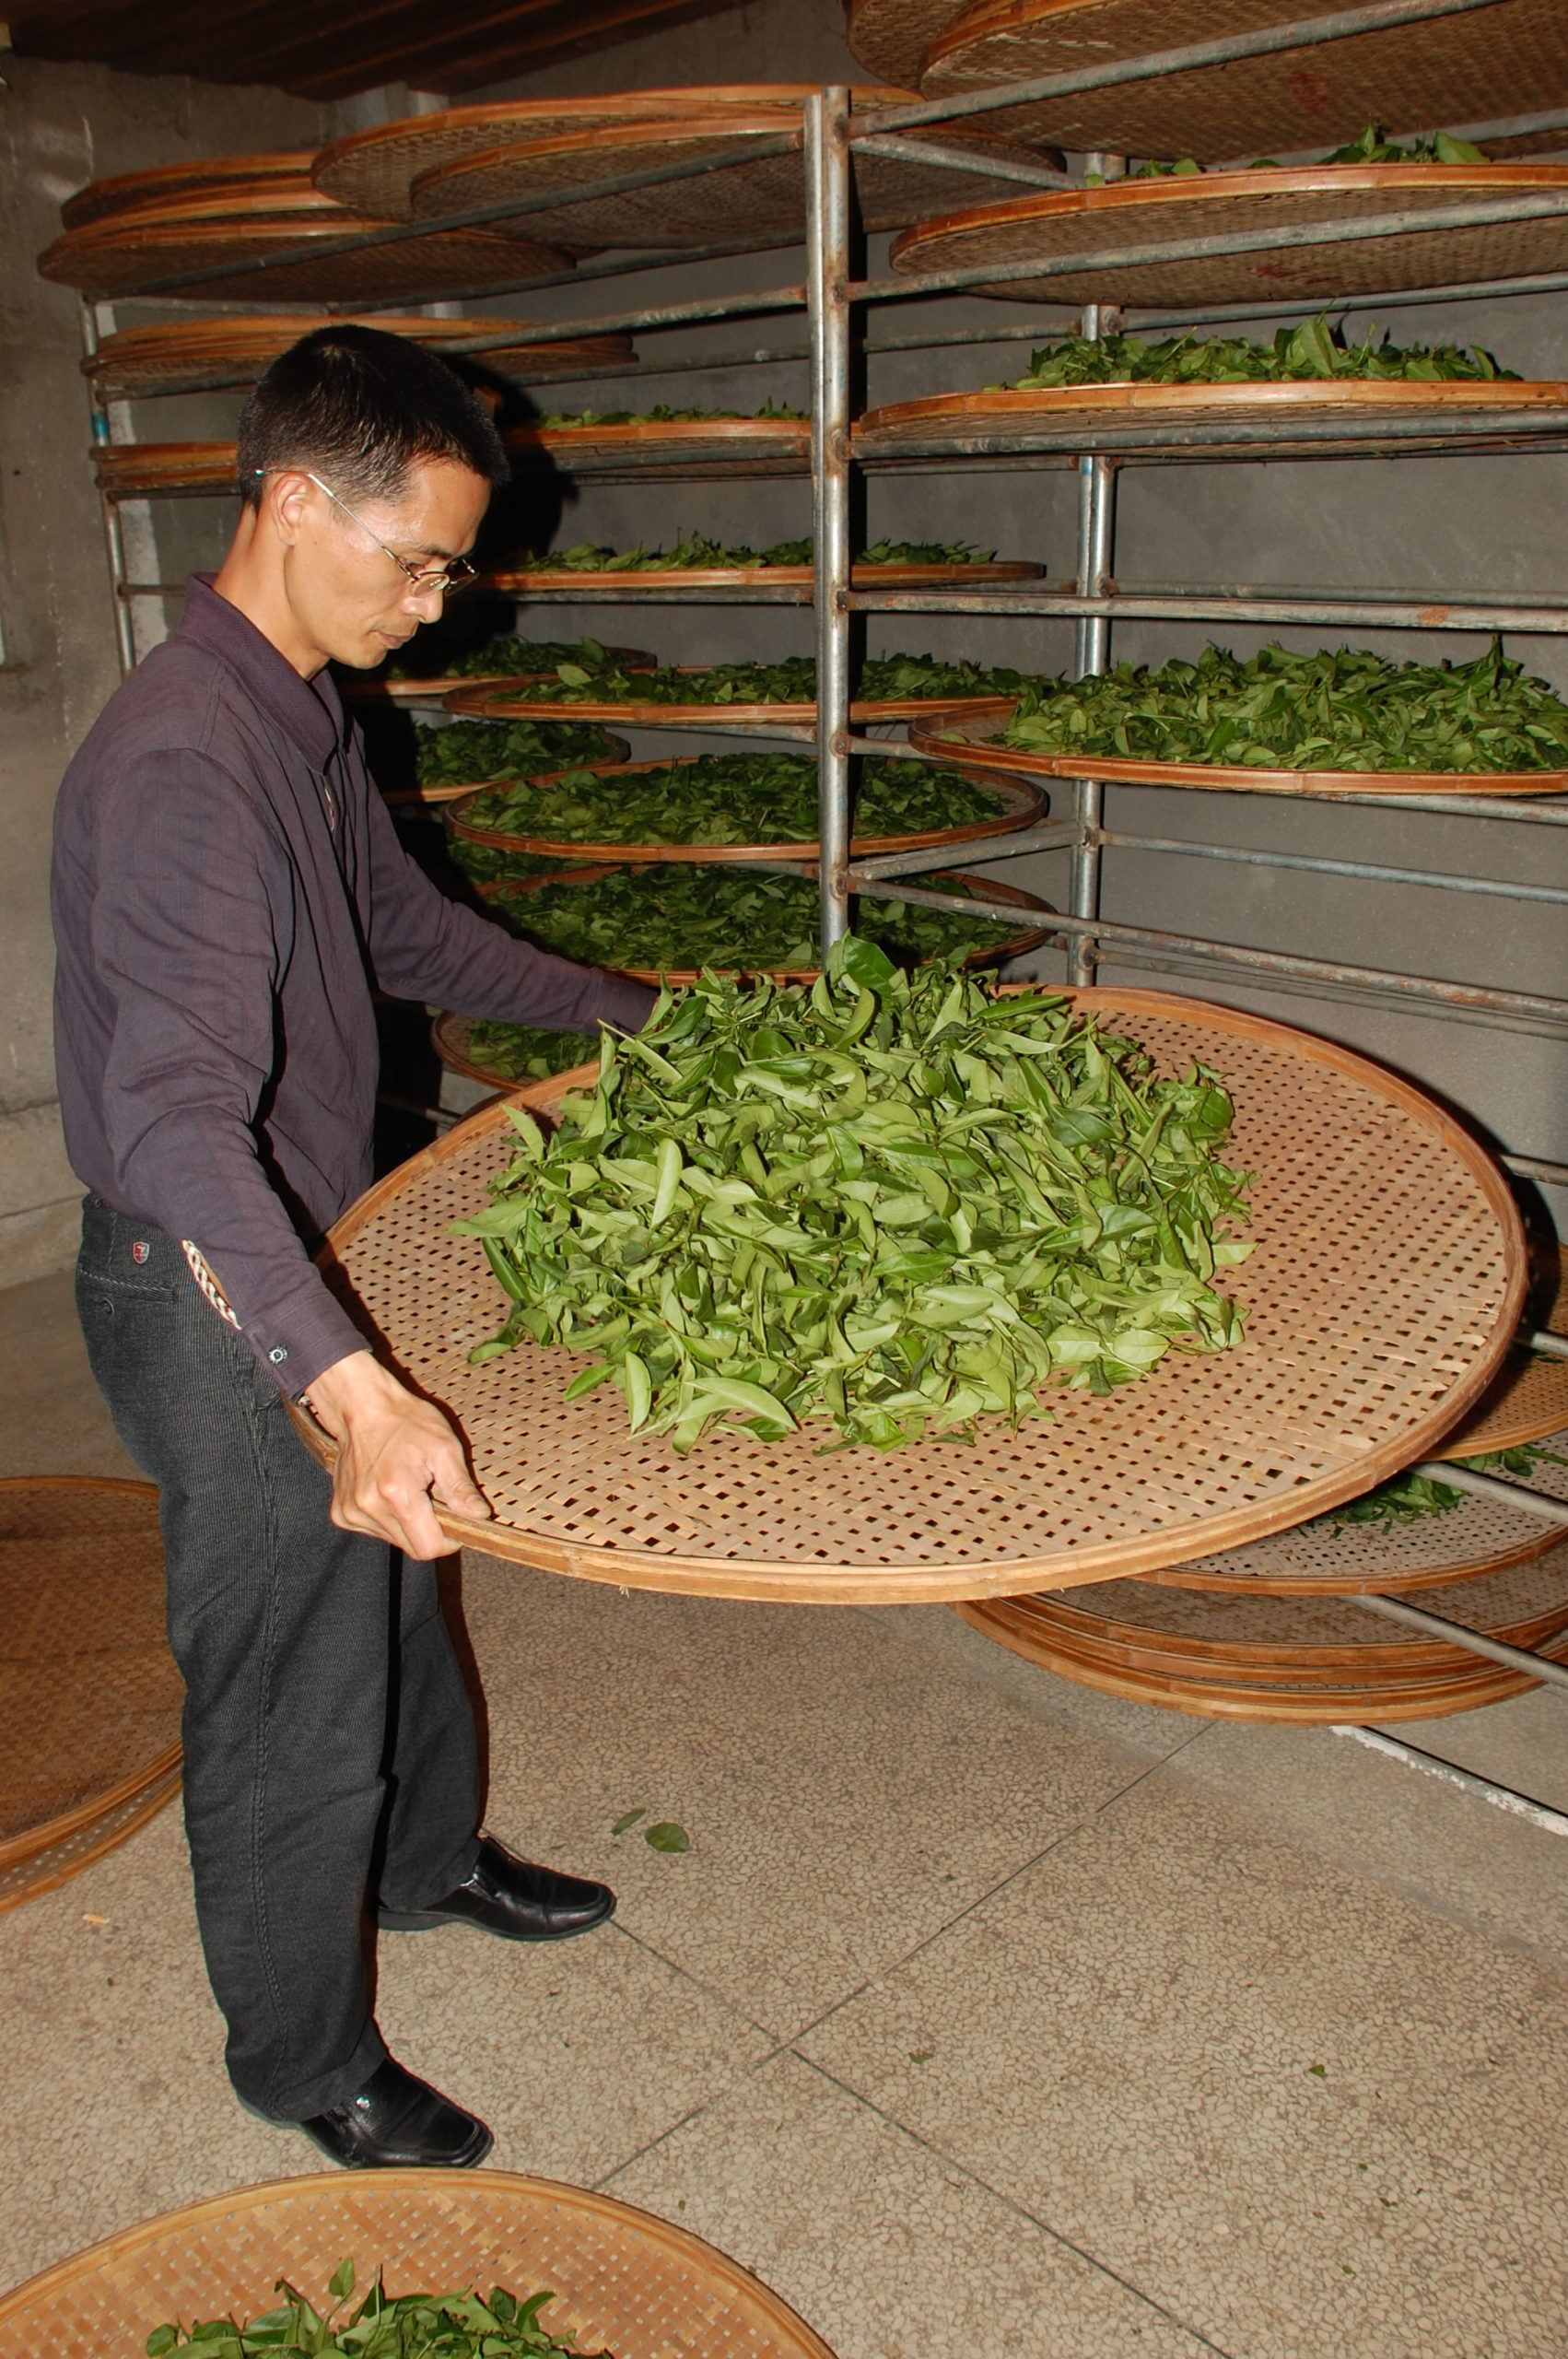 A man holding a large round bamboo tray and lightly tossing the tea leaves on it. Many more such trays rest on vertical racks in the background.